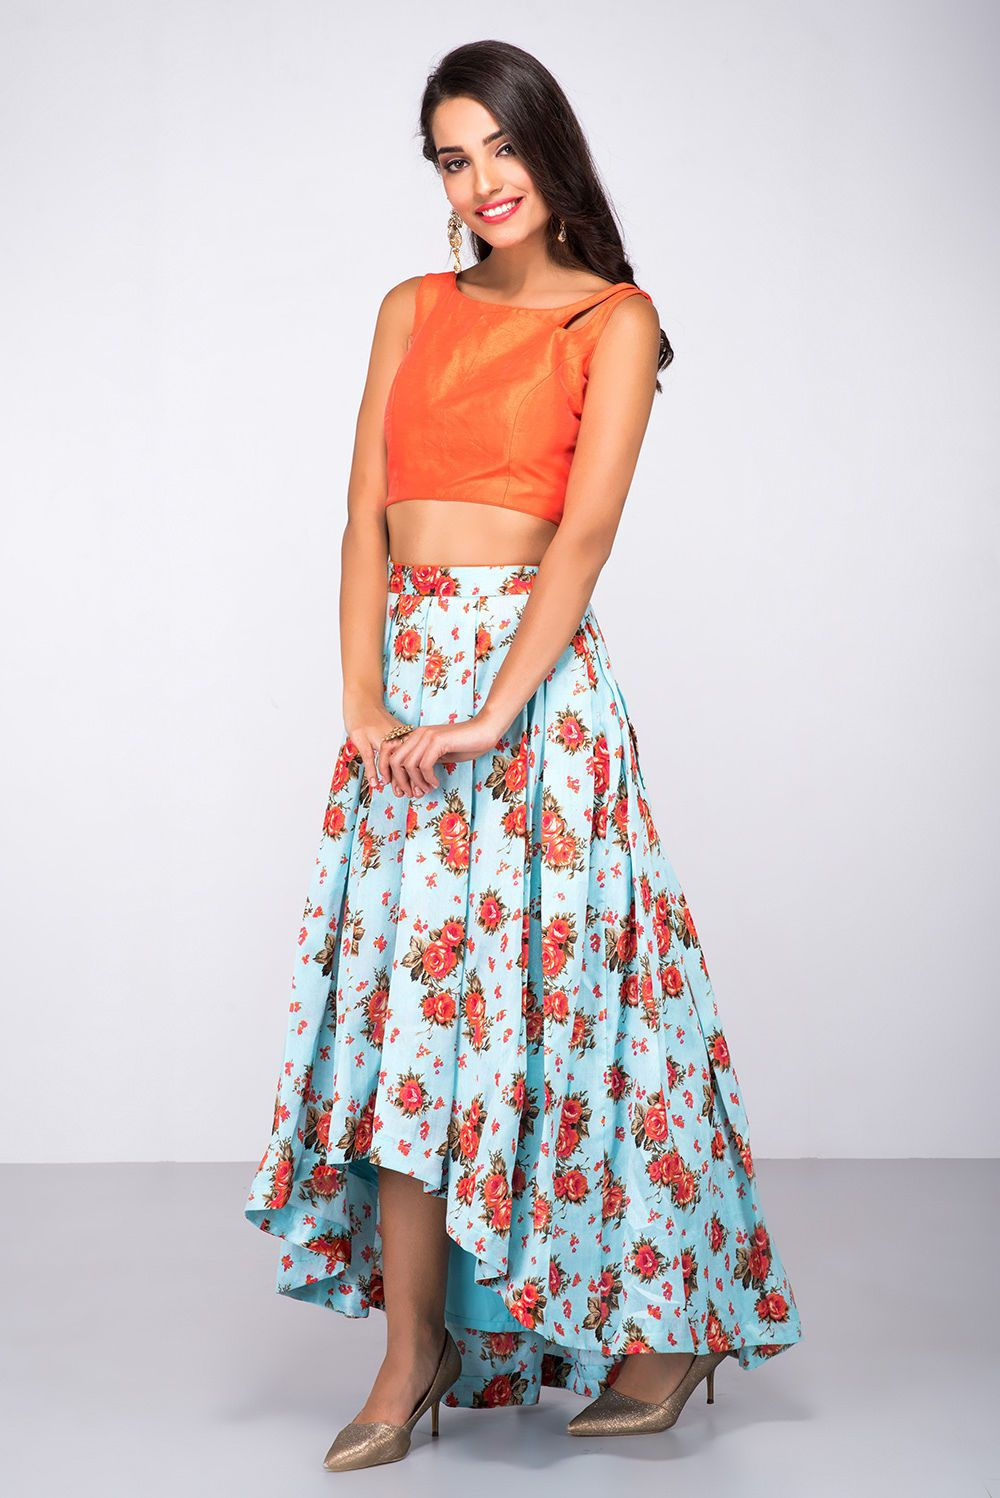 70a687ce16a6e Rent ANISHA SHETTY - Orange Crop Top With Blue FLoral Printed Skirt